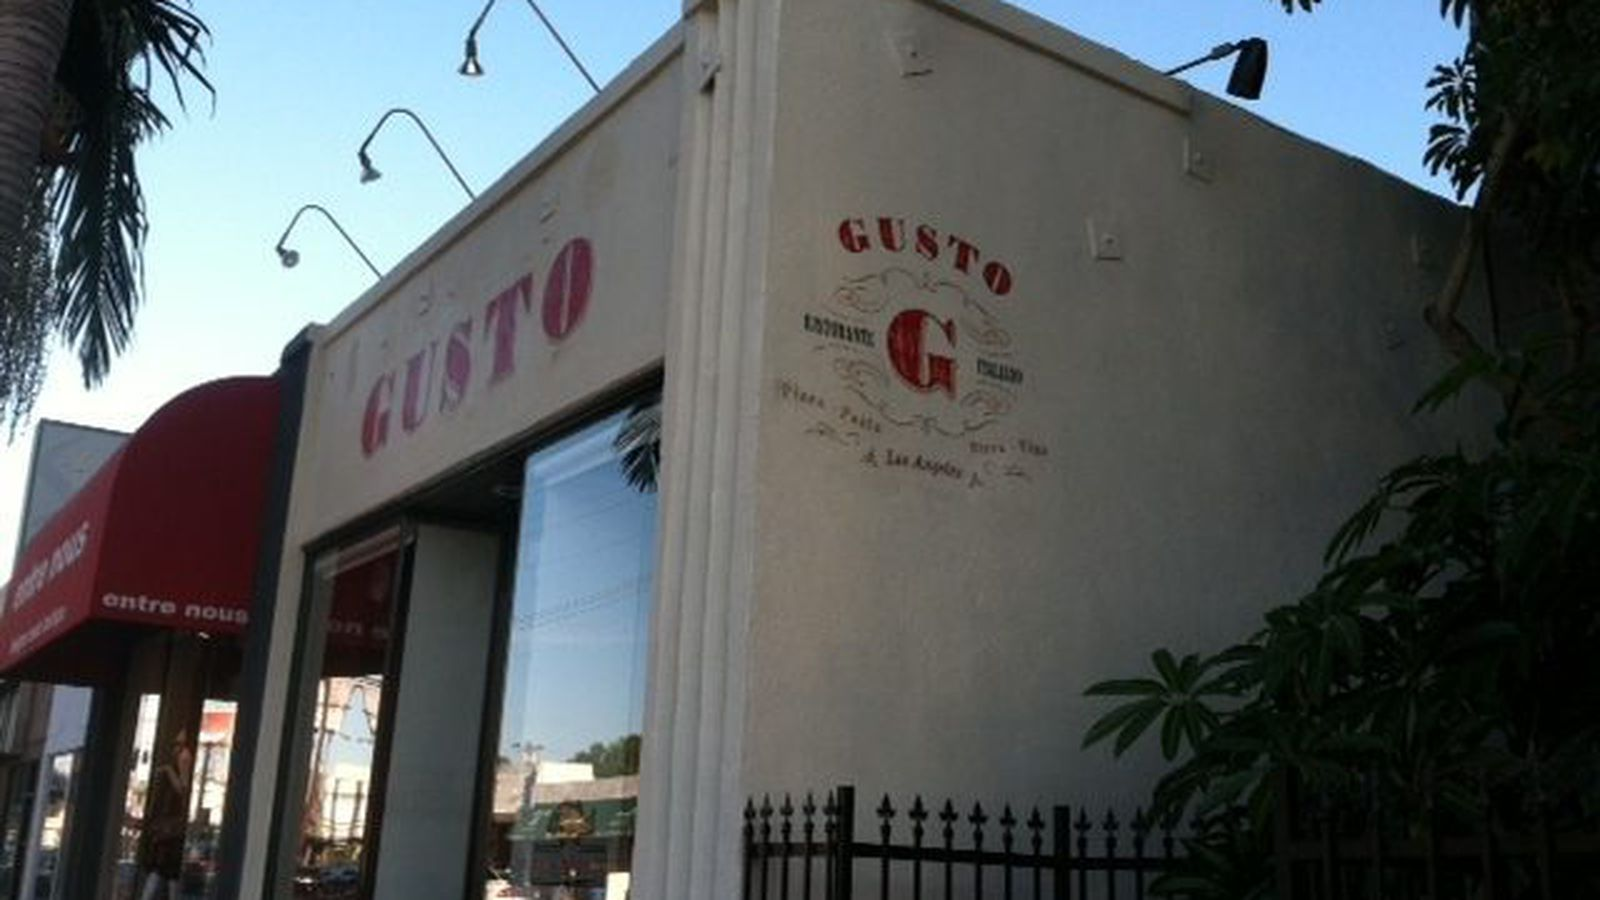 Cucina Restaurant London Eye Vic Casanova Lands On Third Street Opening Gusto Italian